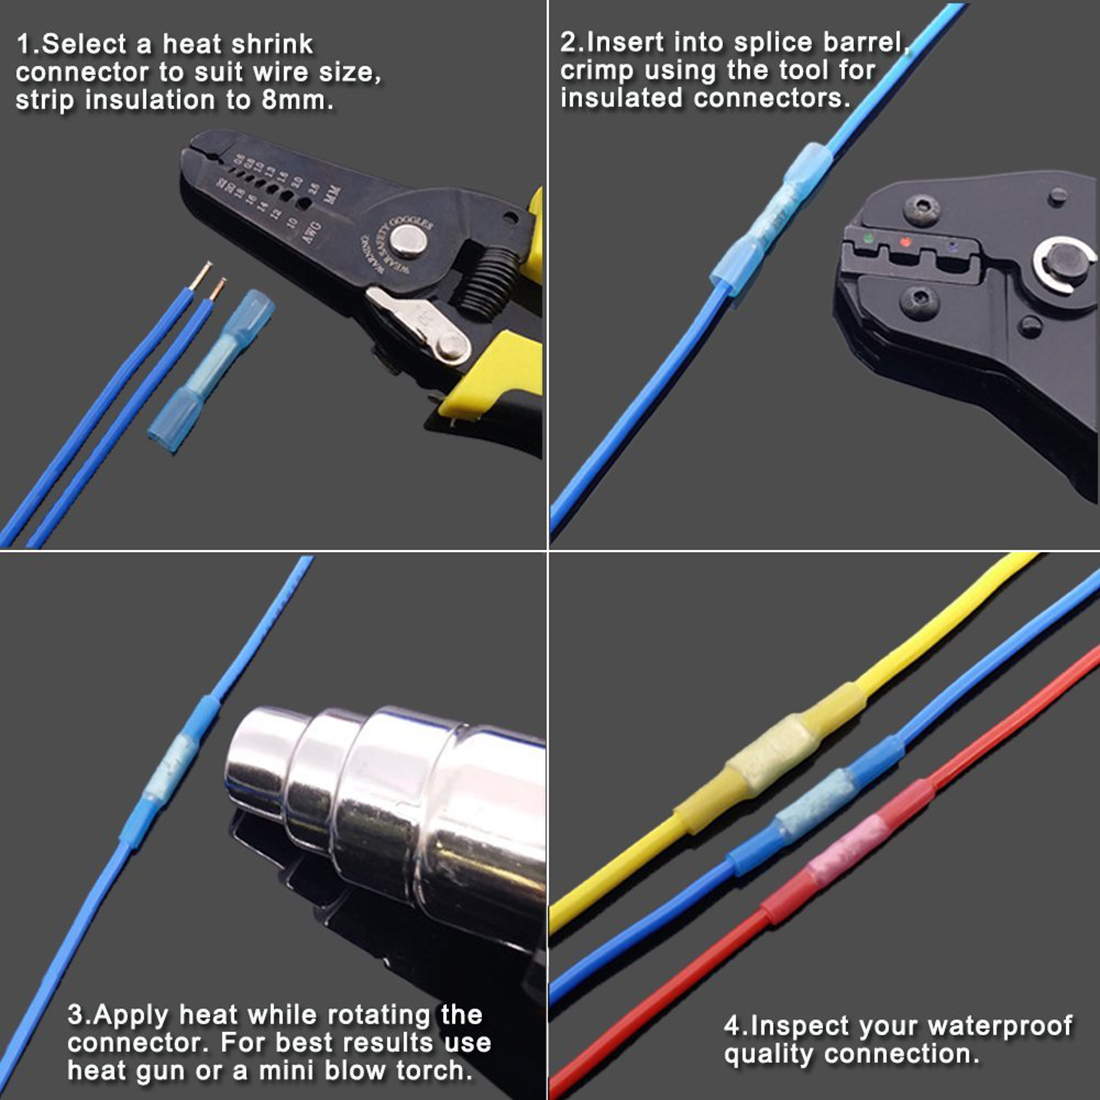 270 pcs heat shrink wire connector kit electrical insulated crimp red connectors 04mm to 15mm2 22 16awg wire blue connectors 15mm to 25mm2 16 14awg wire yellow connectors 40mm to 60mm2 12 10awg wire greentooth Gallery